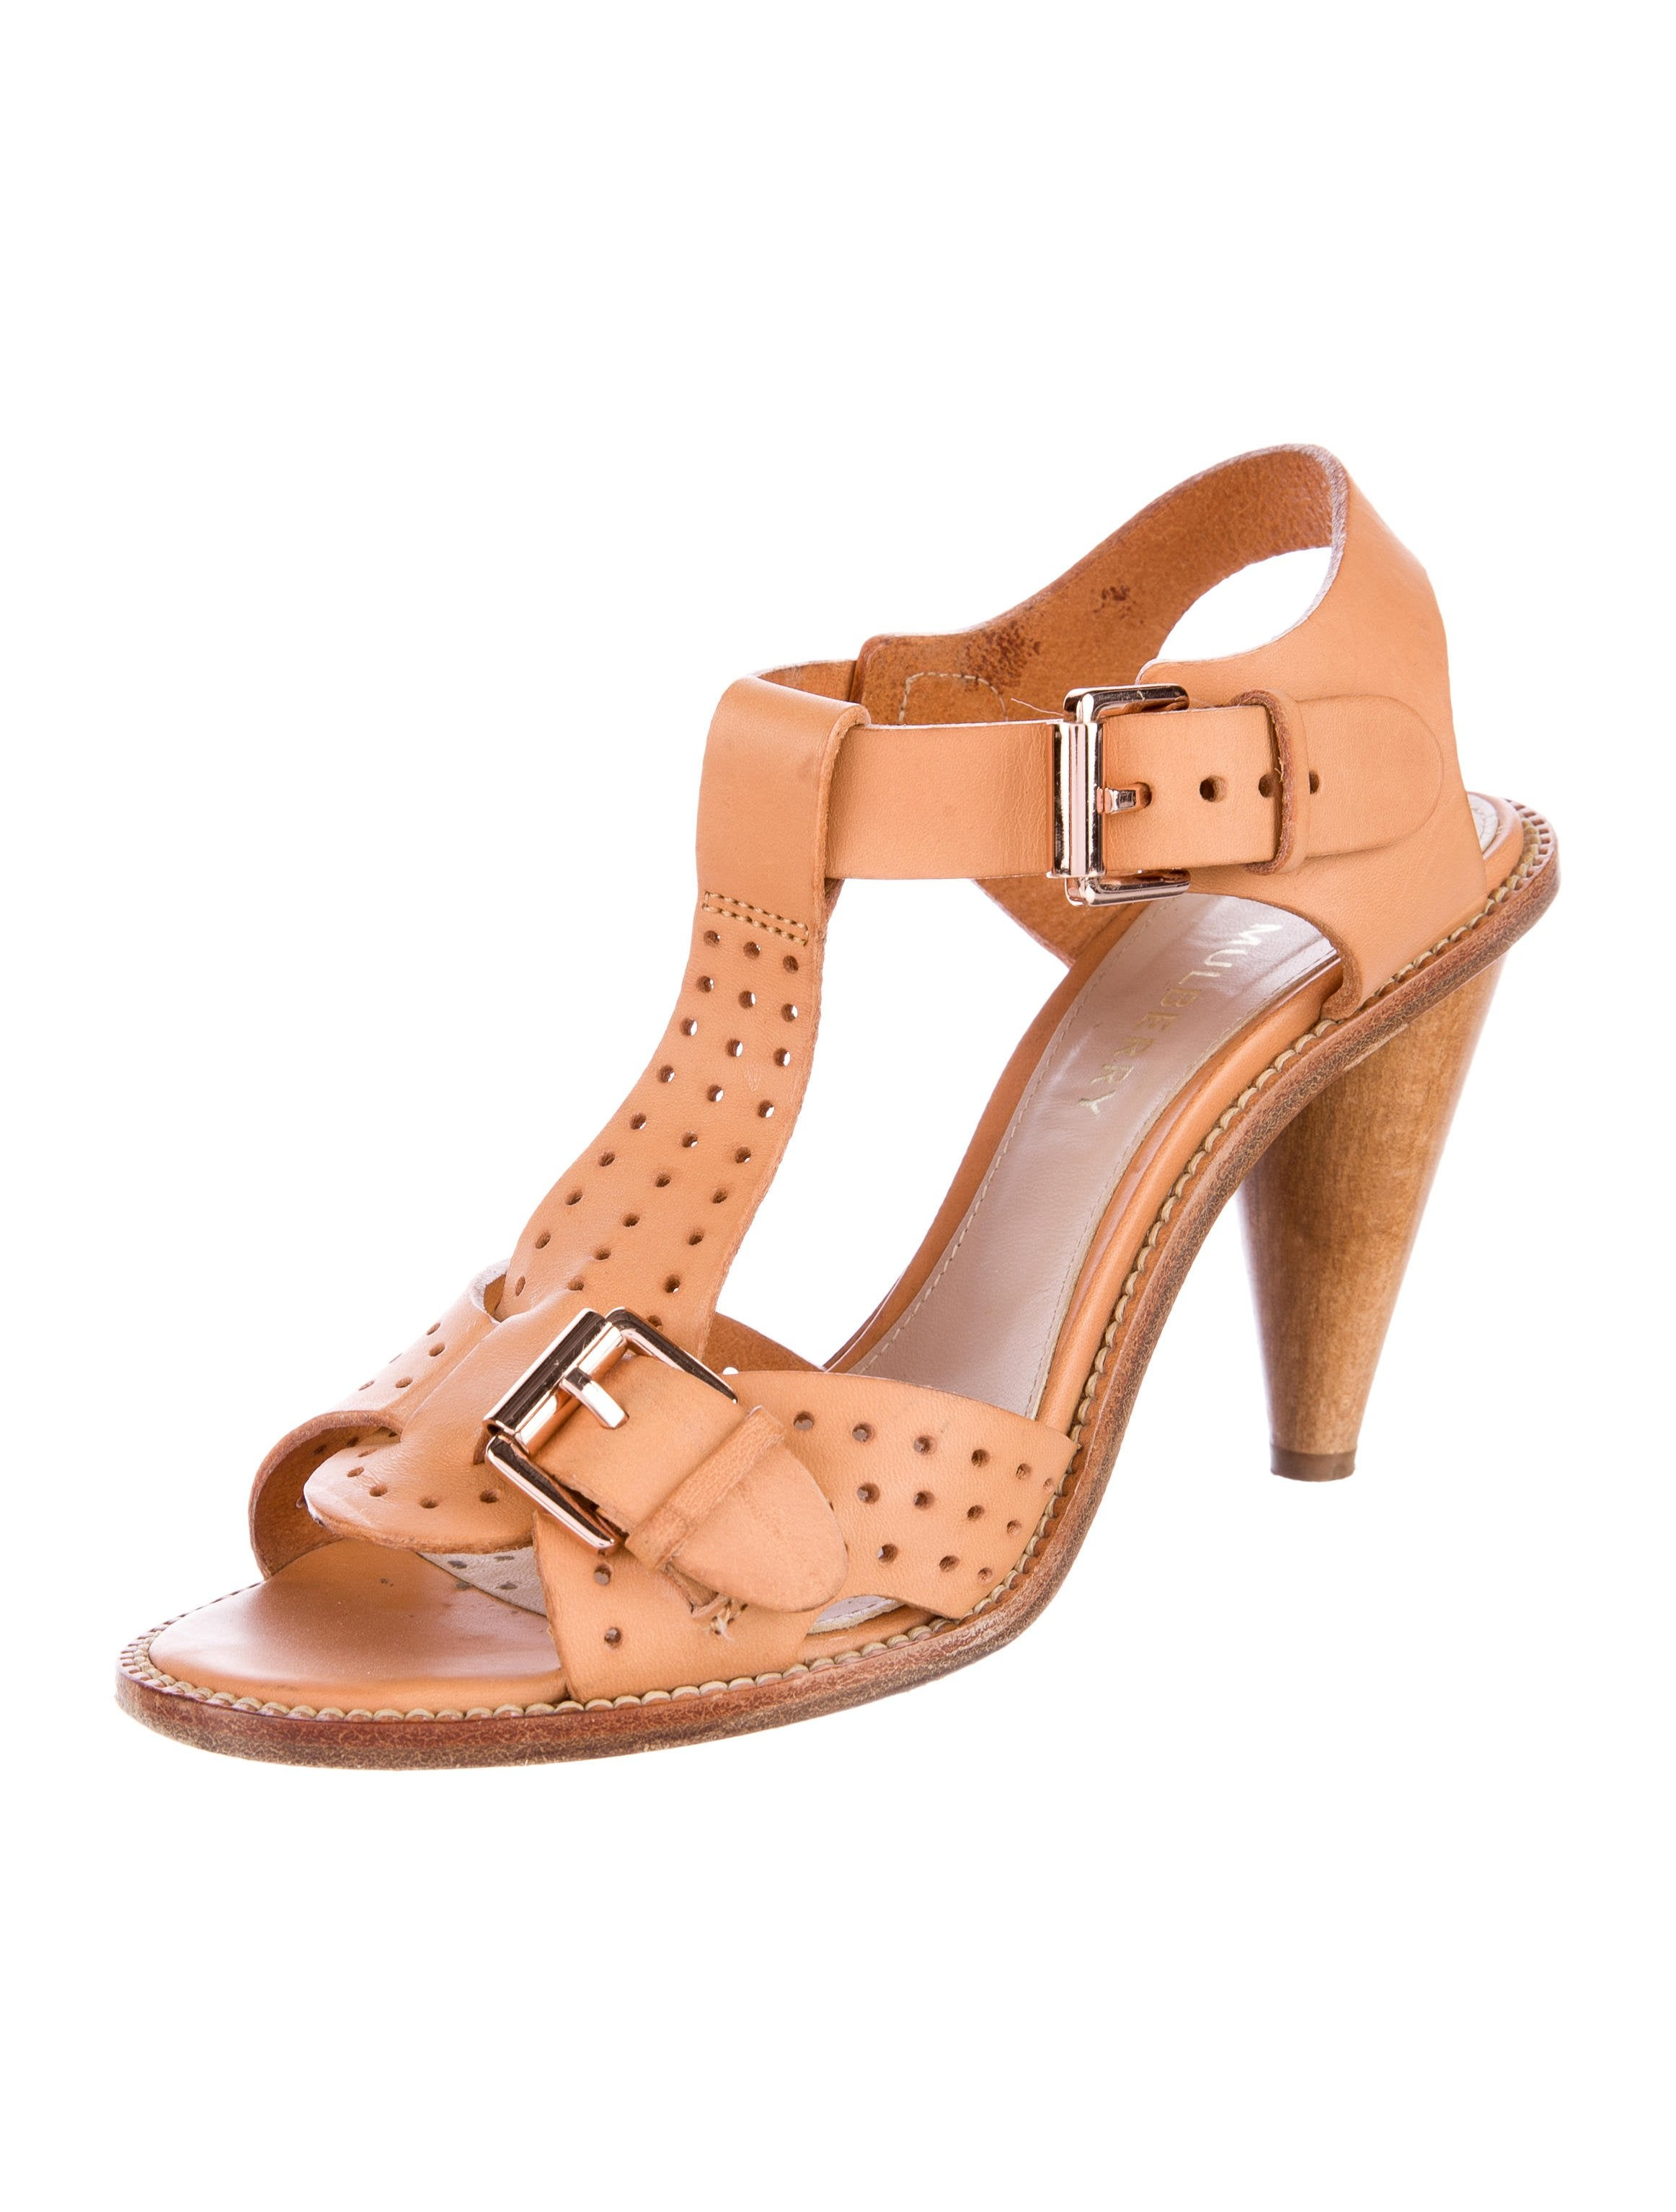 Mulberry Edie Perforated Sandals